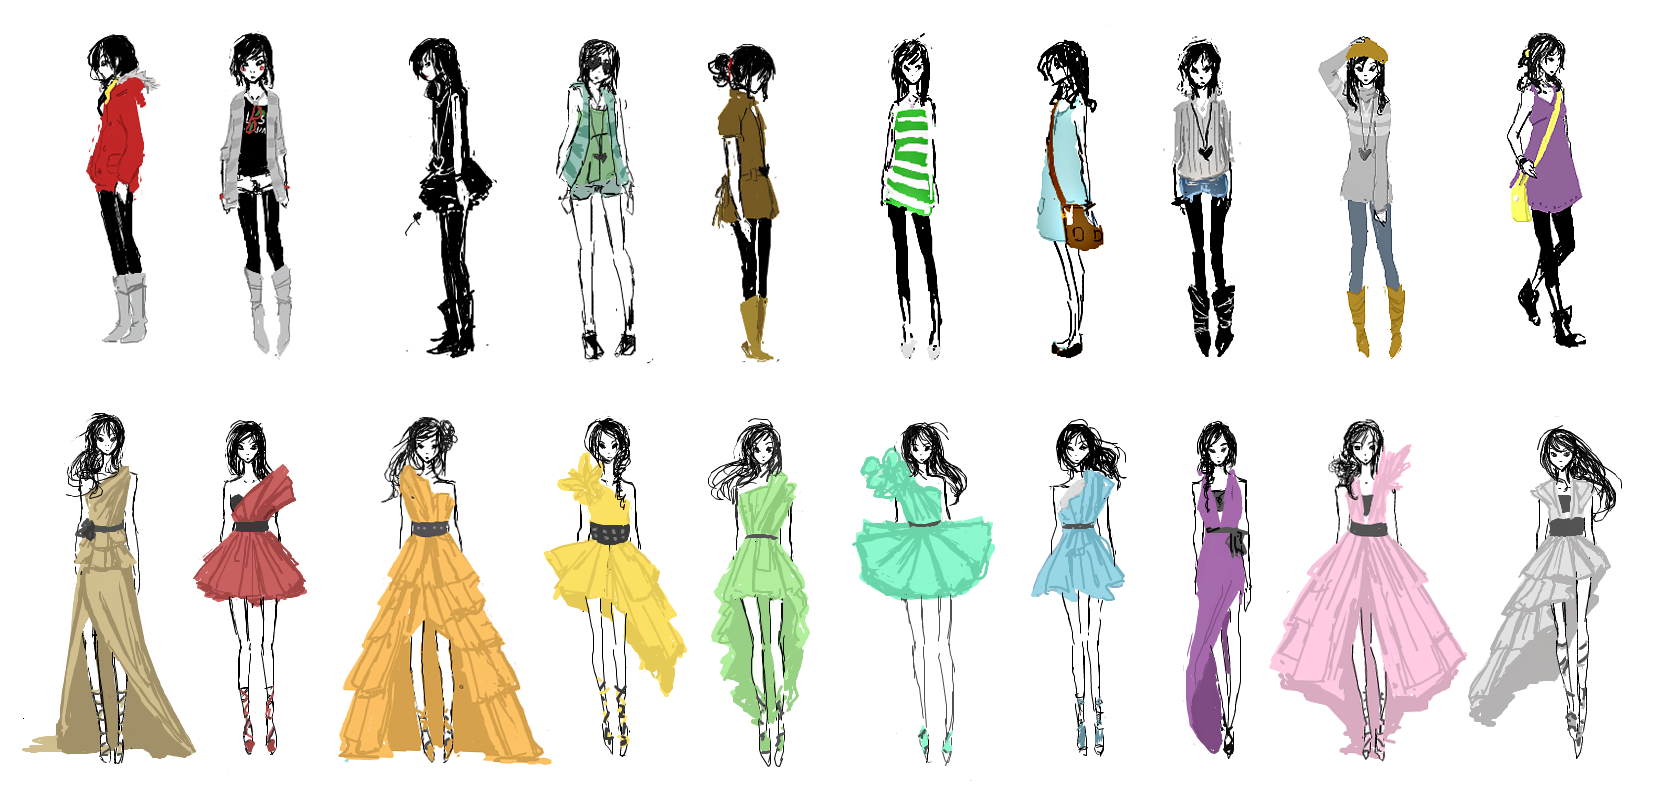 Scribble Fashion By Yamiaki Deviantart Com On Deviantart Drawing Anime Clothes Anime Outfits Fashion Illustration